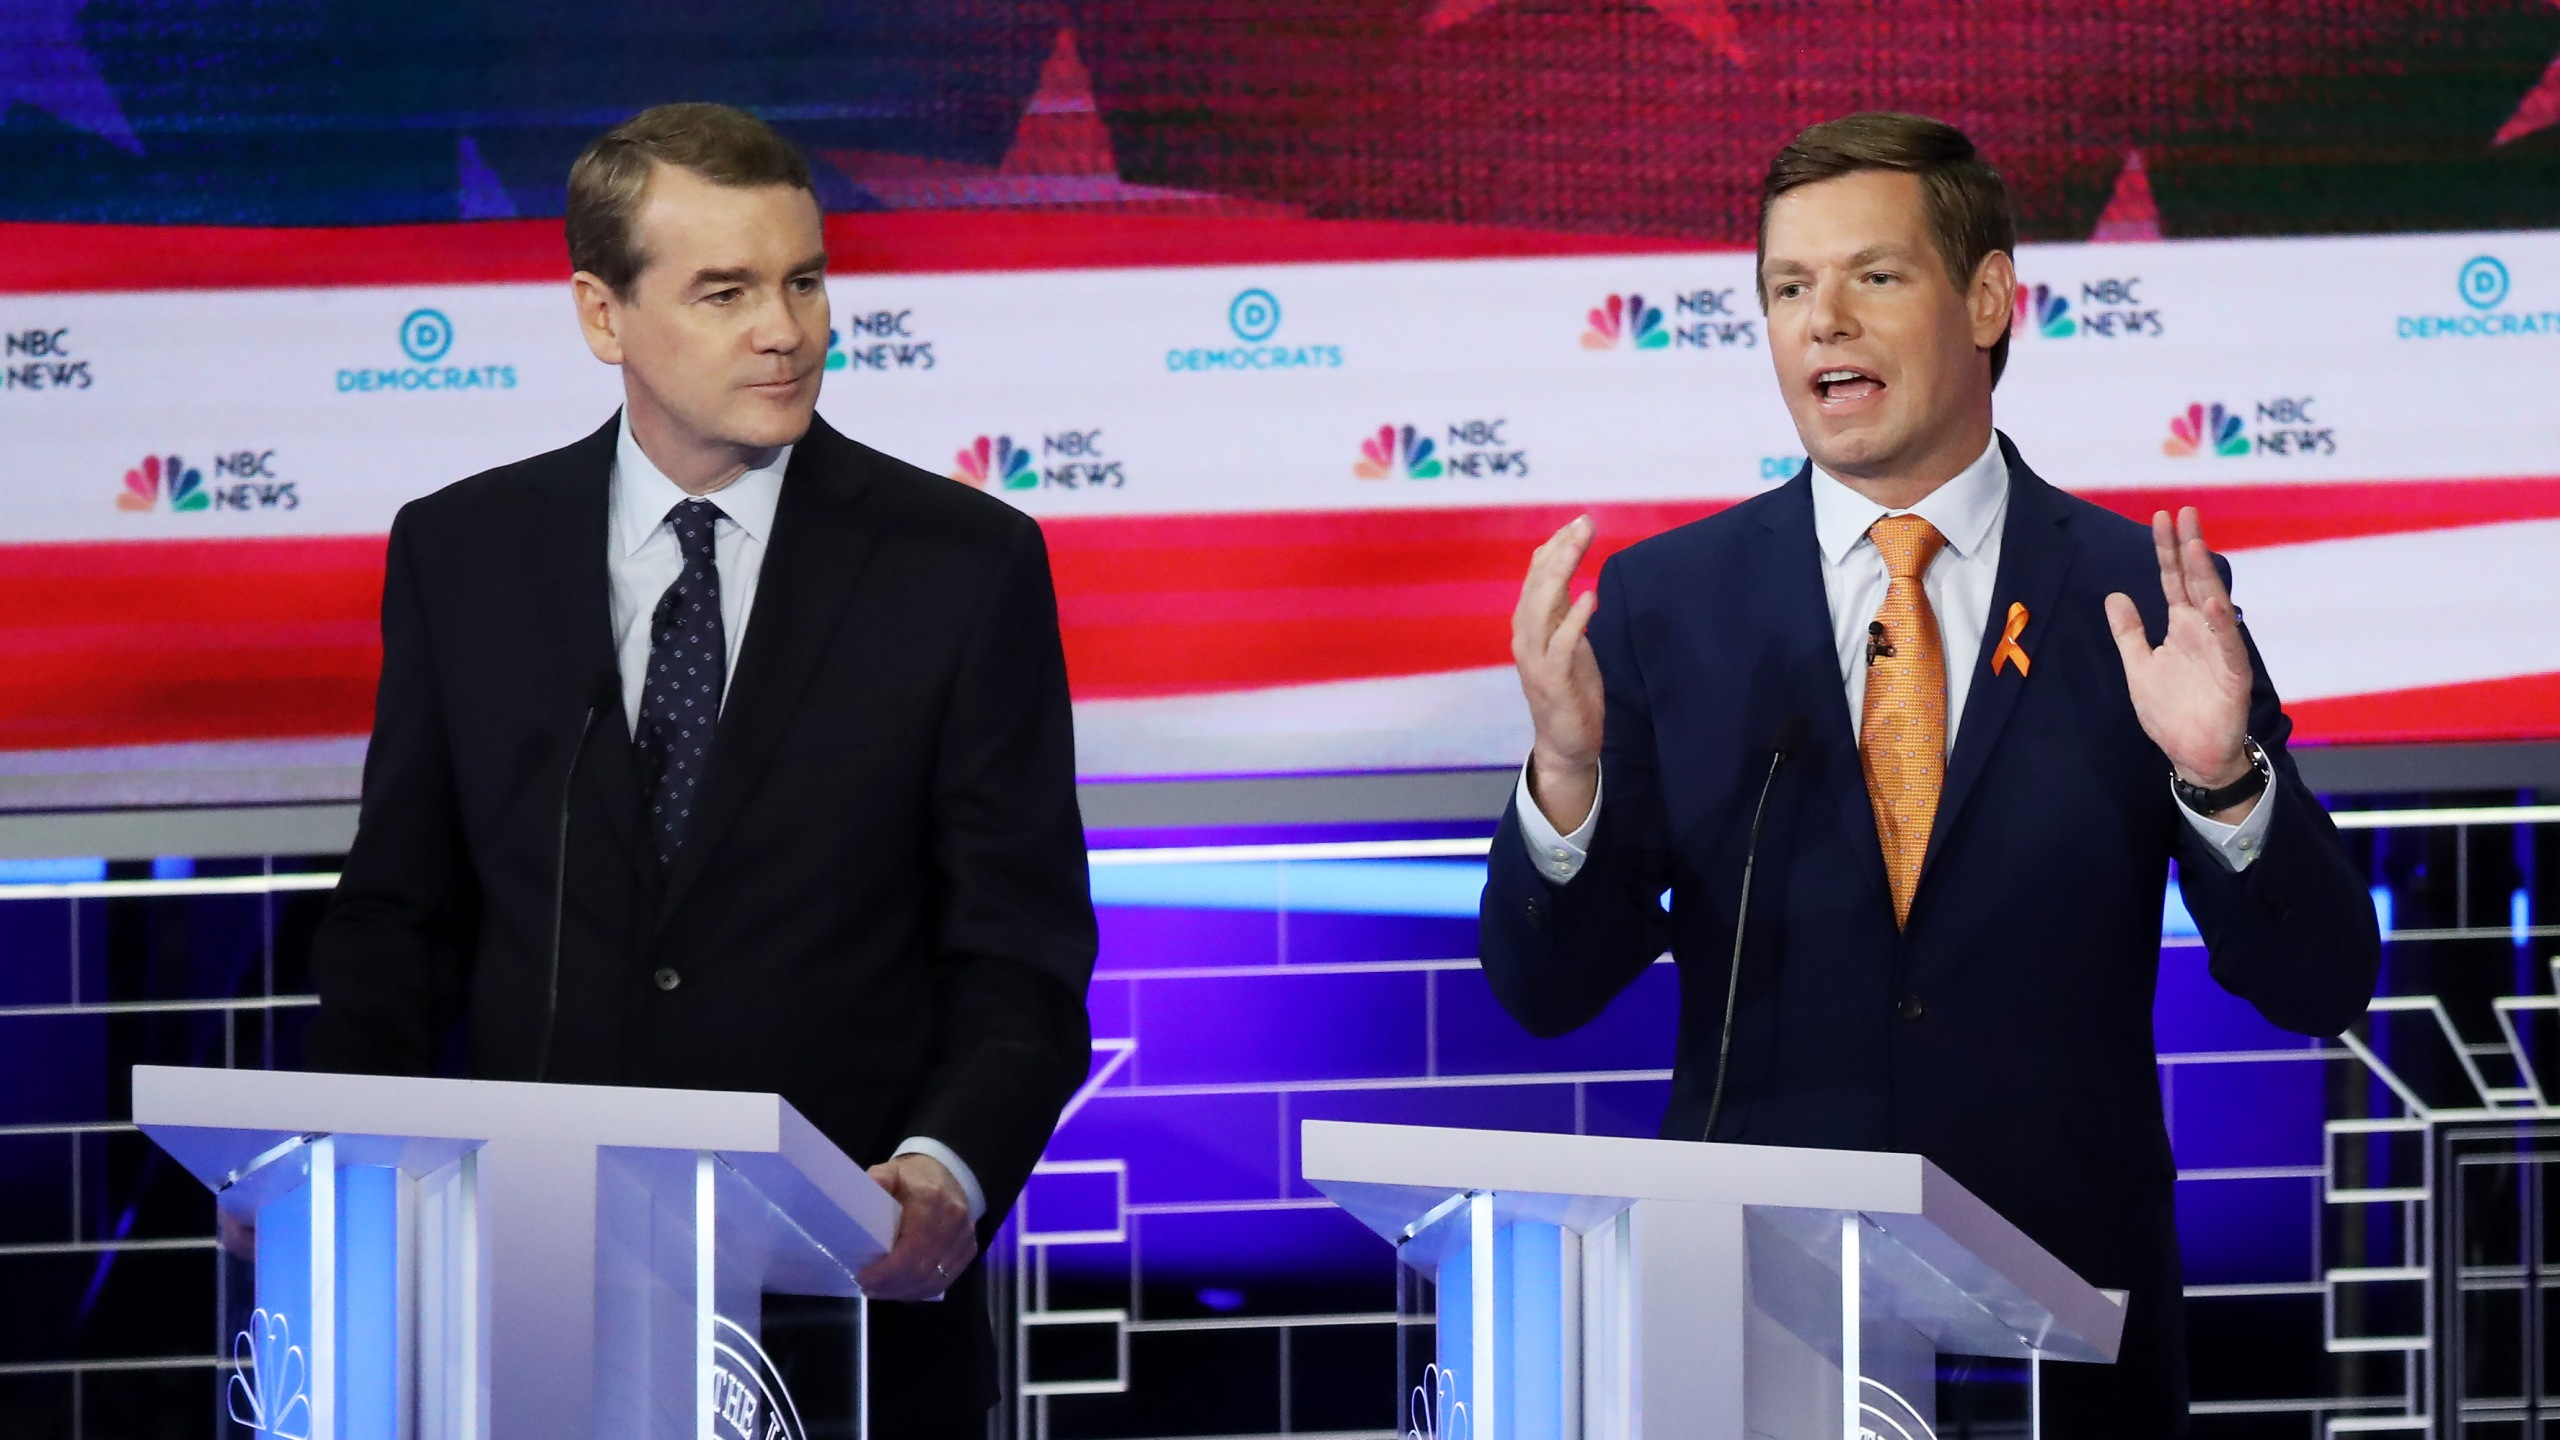 Rep. Eric Swallwell, D-California, speaks as Sen. Michael Bennet, D-Colorado, looks on during the second night of the first Democratic presidential debate on June 27, 2019 in Miami. (Credit: Drew Angerer/Getty Images)